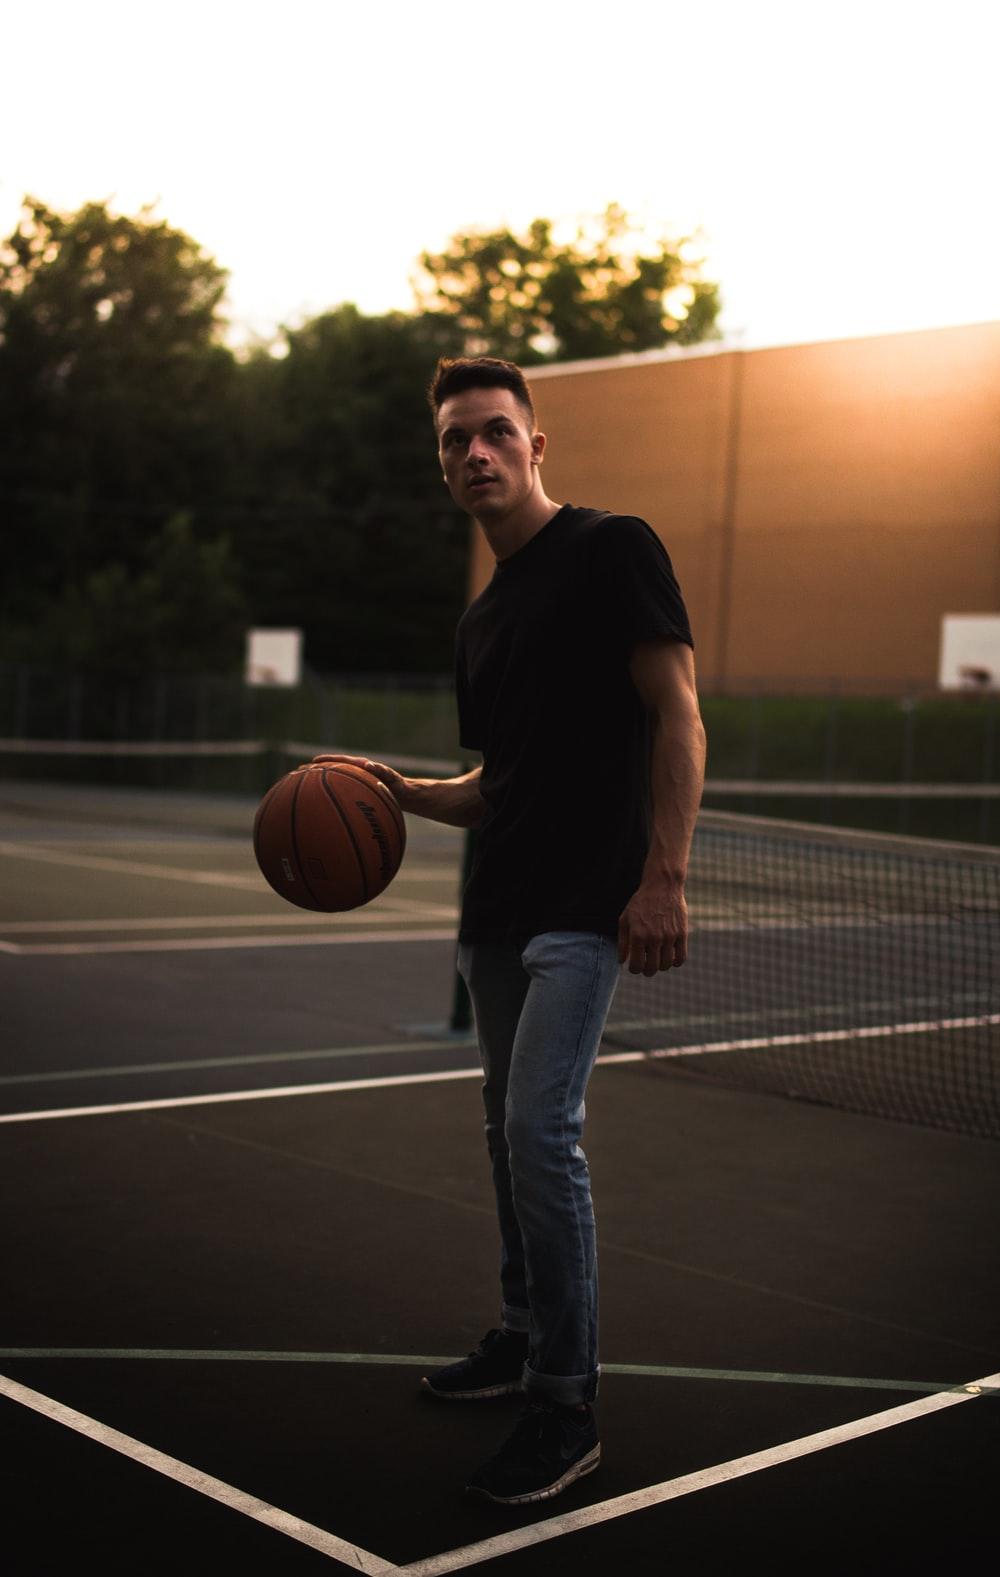 man in black crew neck t-shirt and blue denim jeans holding basketball during daytime